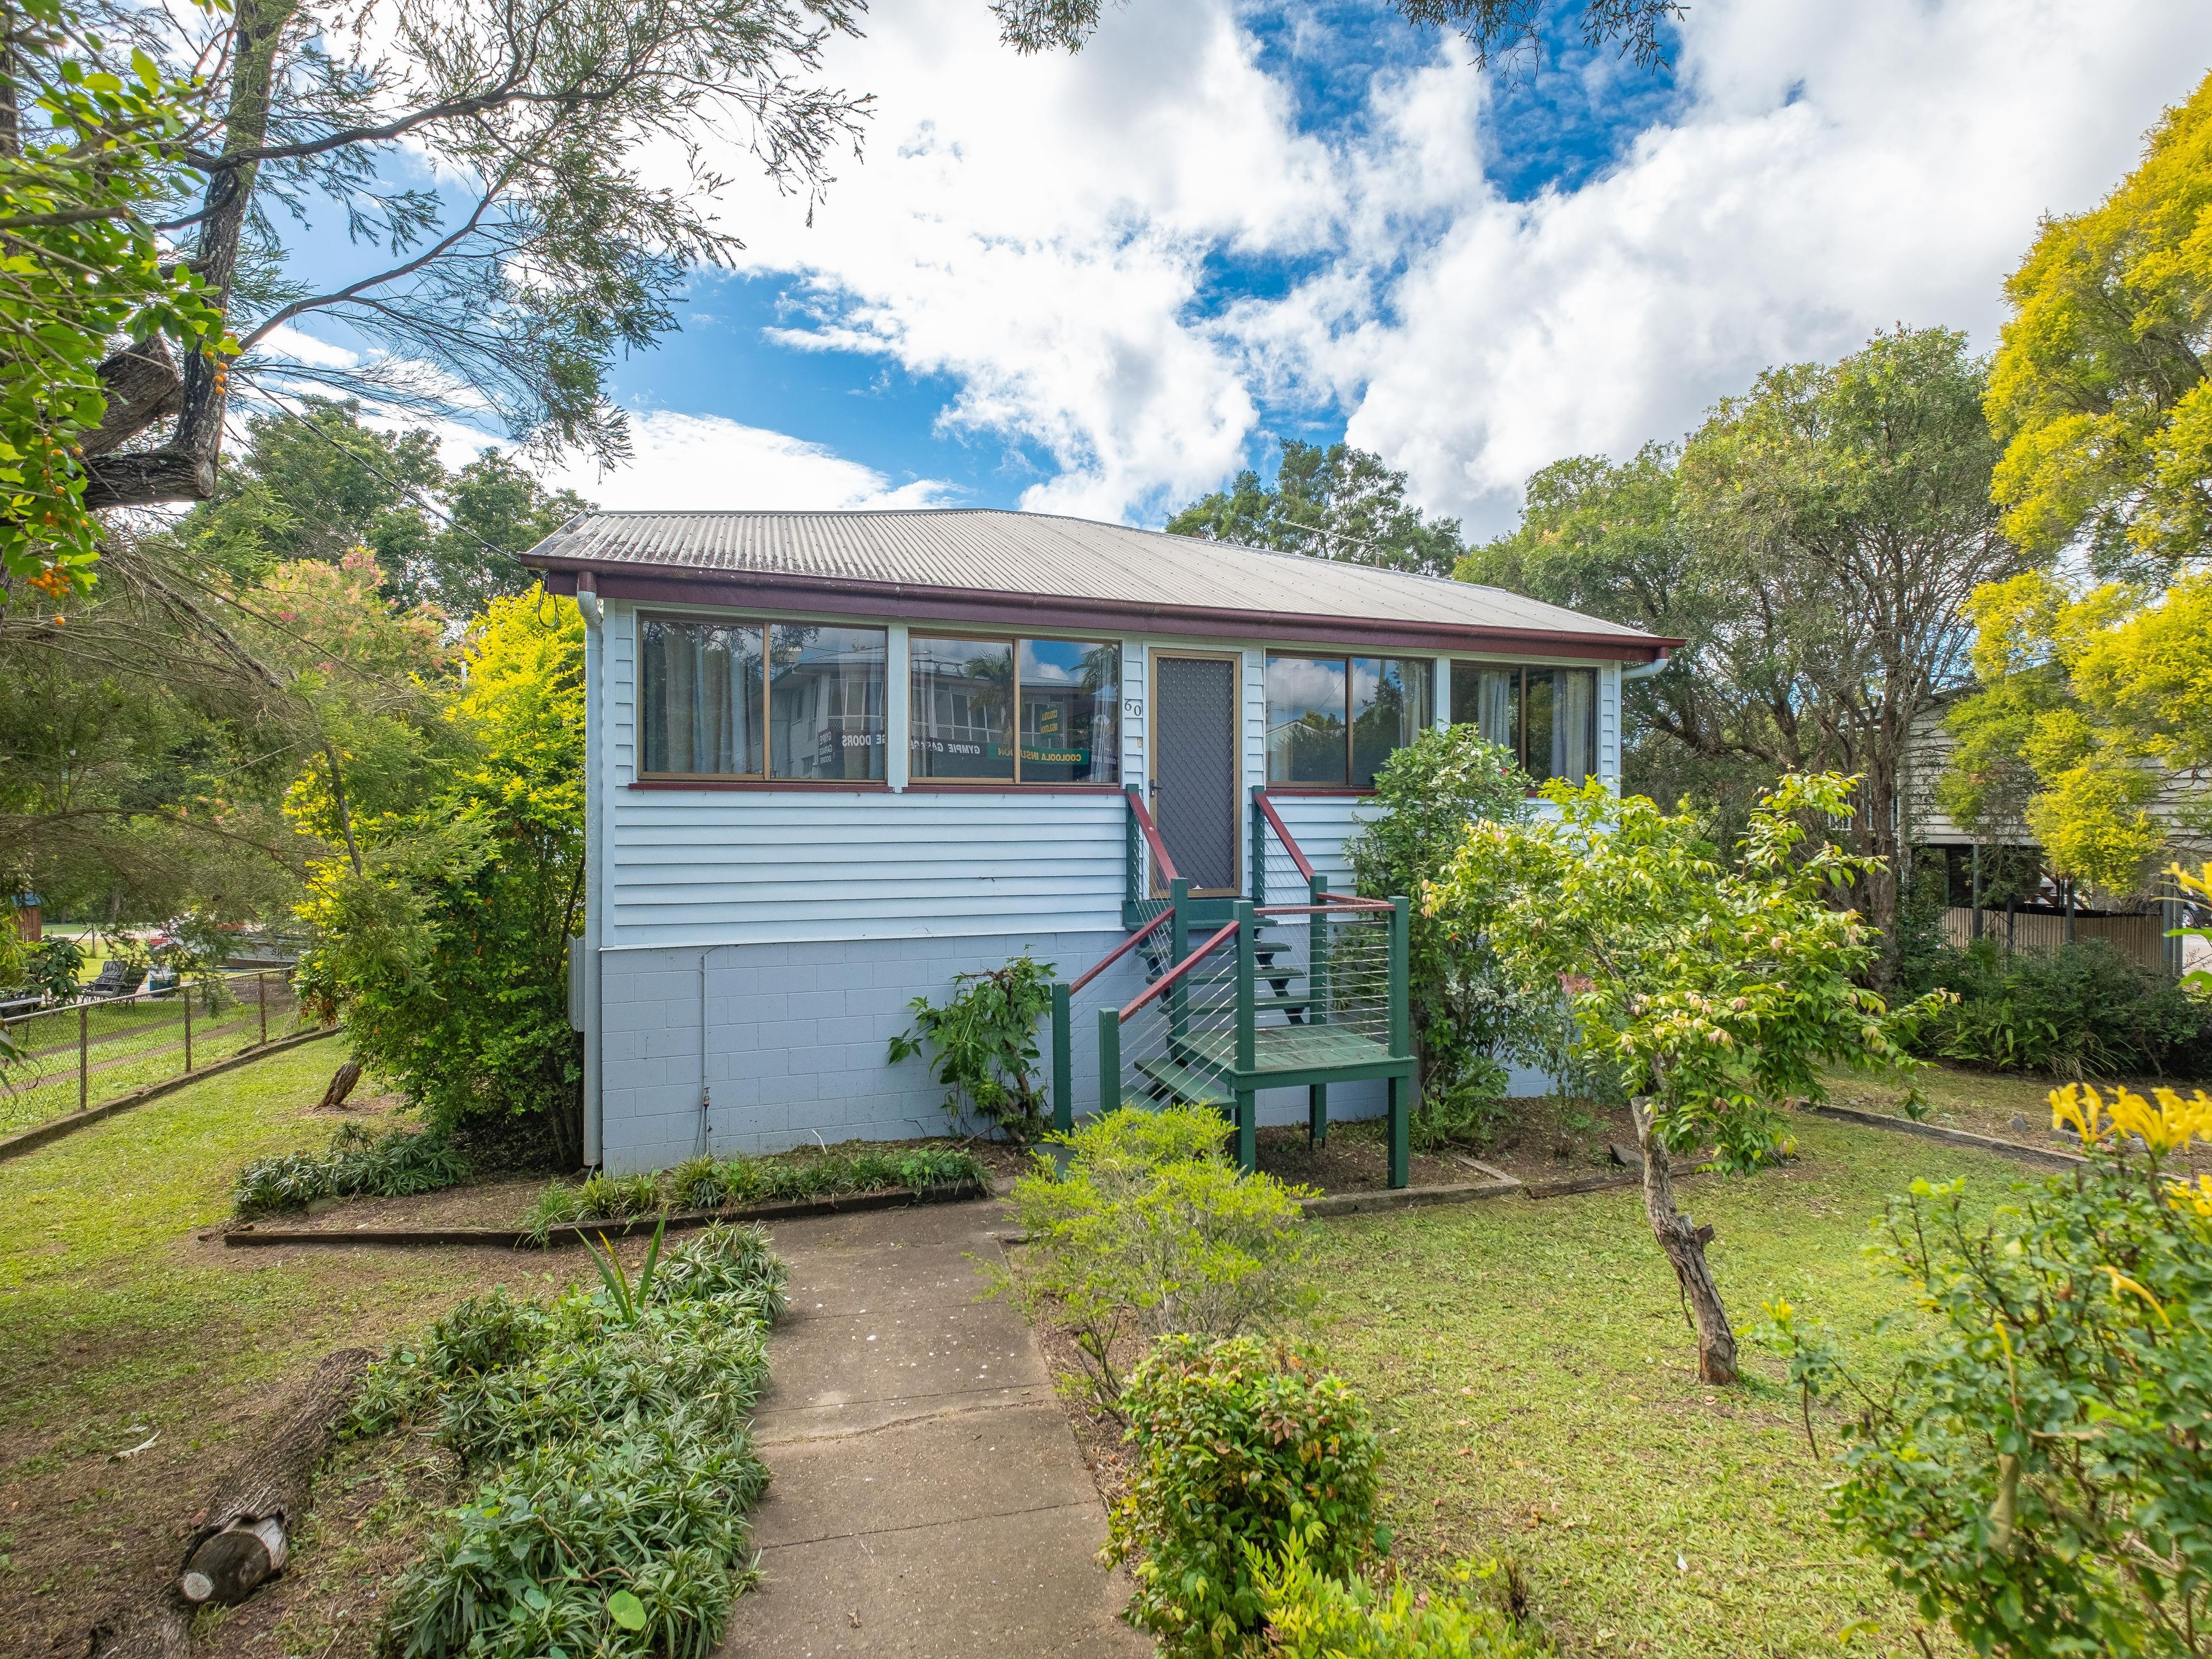 Properties For Sale Under $19,19 in Gympie, QLD 19 - Homely